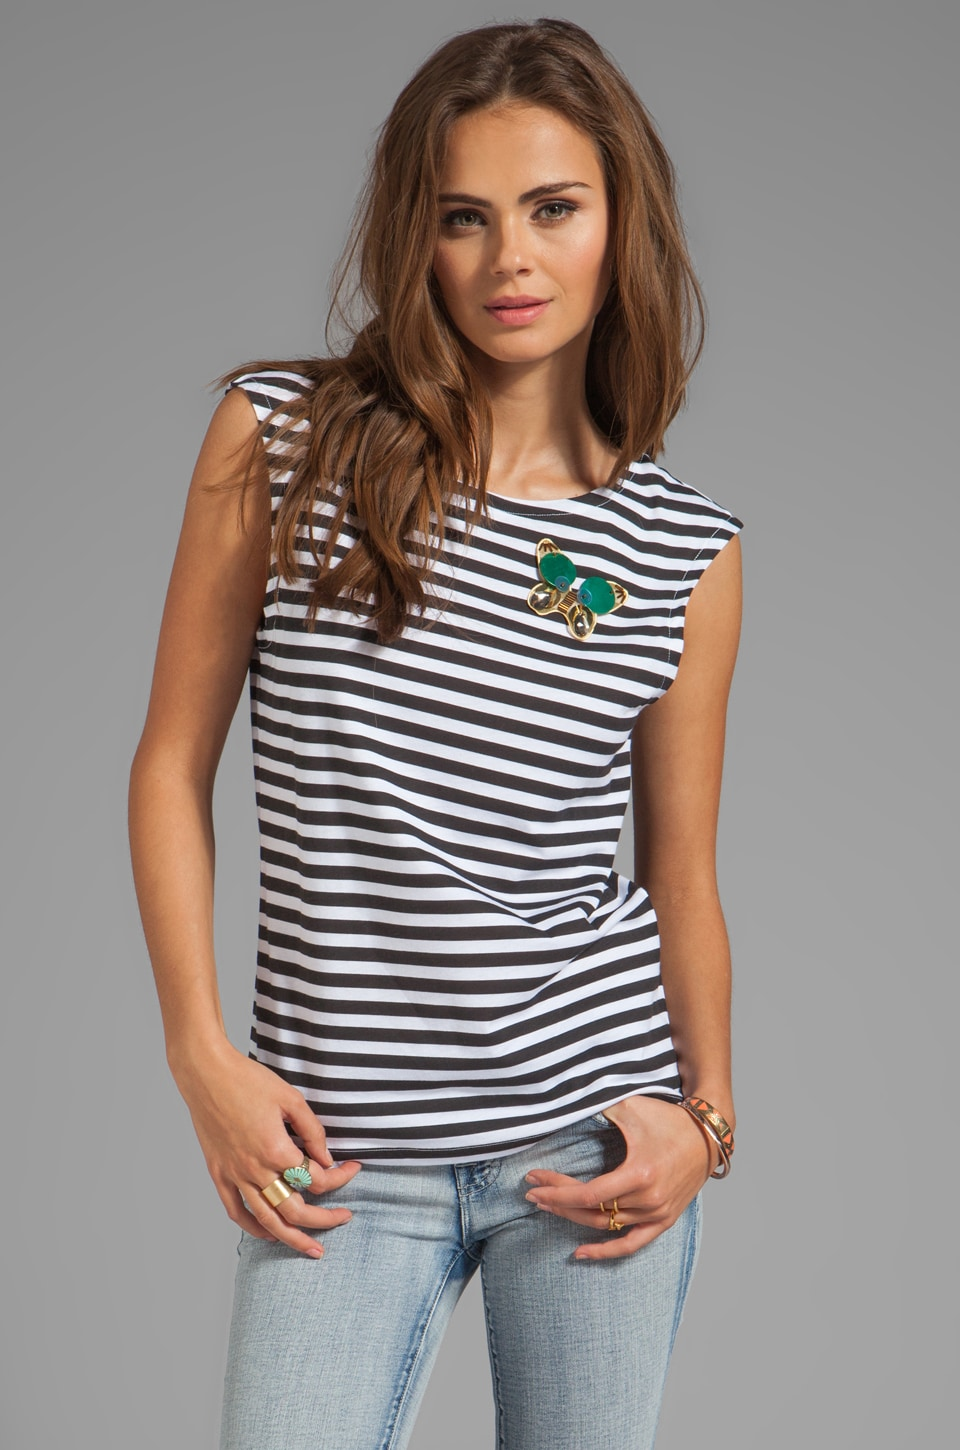 SONIA by Sonia Rykiel Butterfly Striped Jersey Tee in Black/Crystal